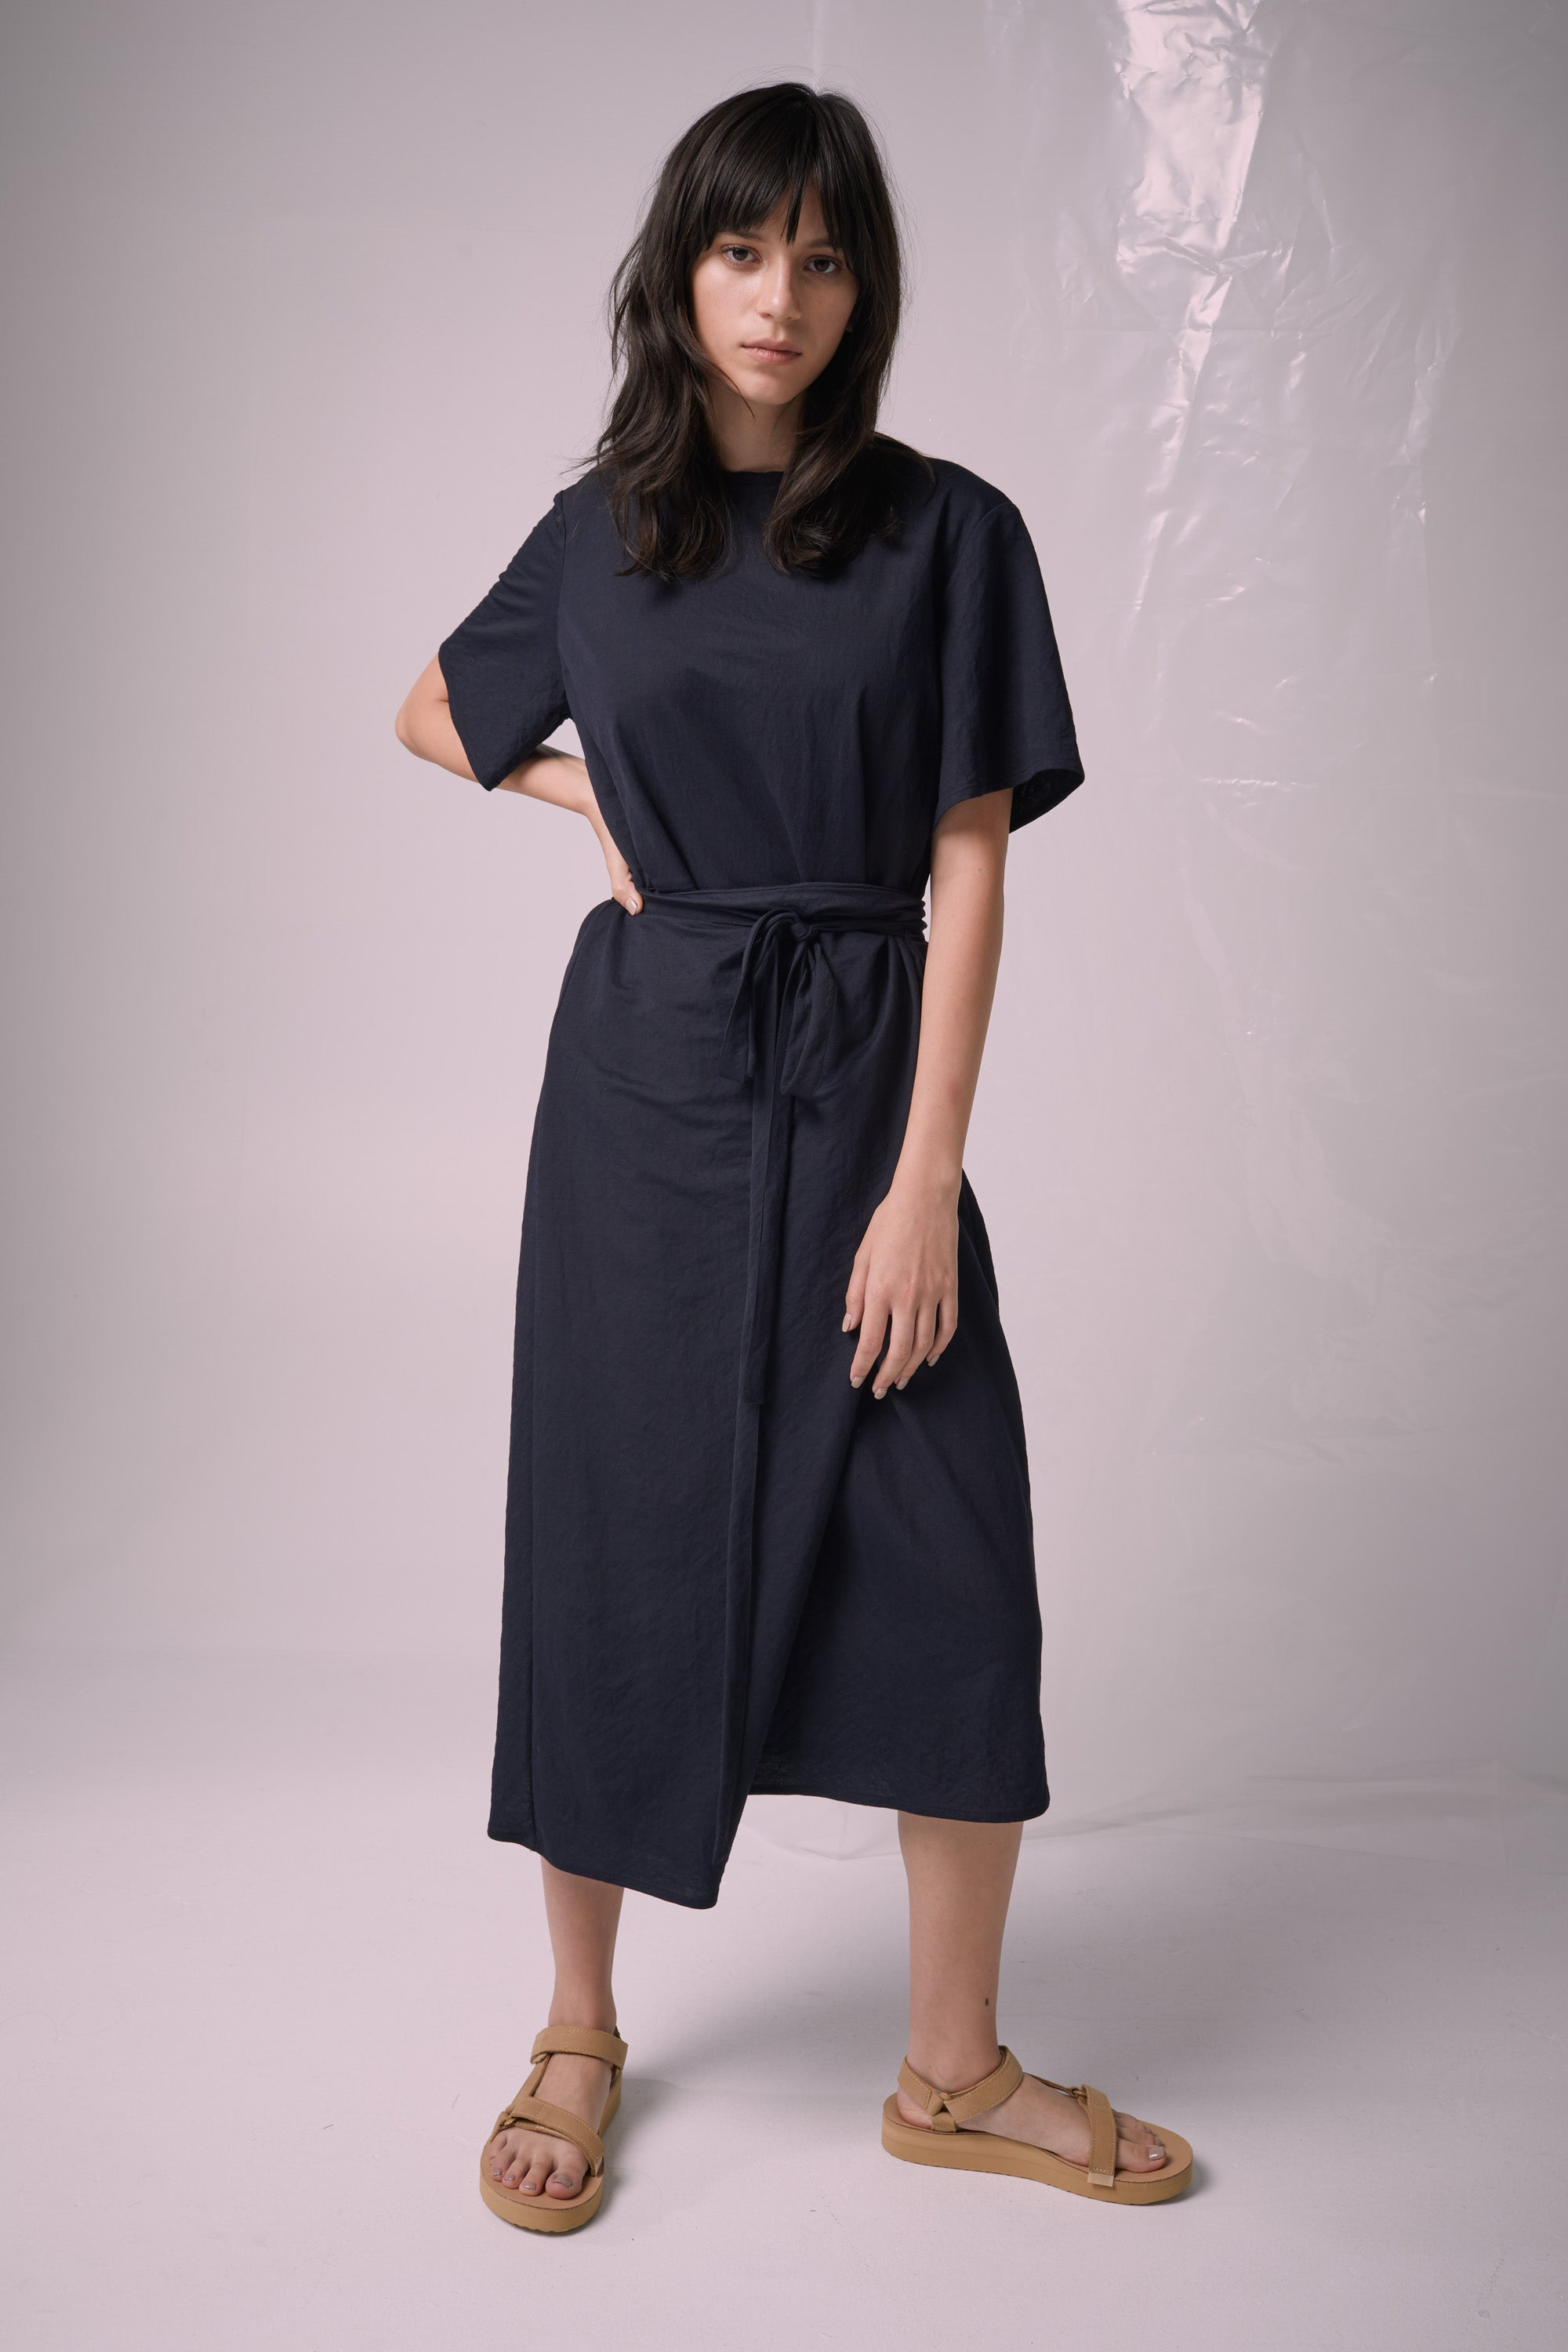 Ricochet NZ Fashion Designer Clothing Boutique SS19  Made in NZ Jil Dress Navy